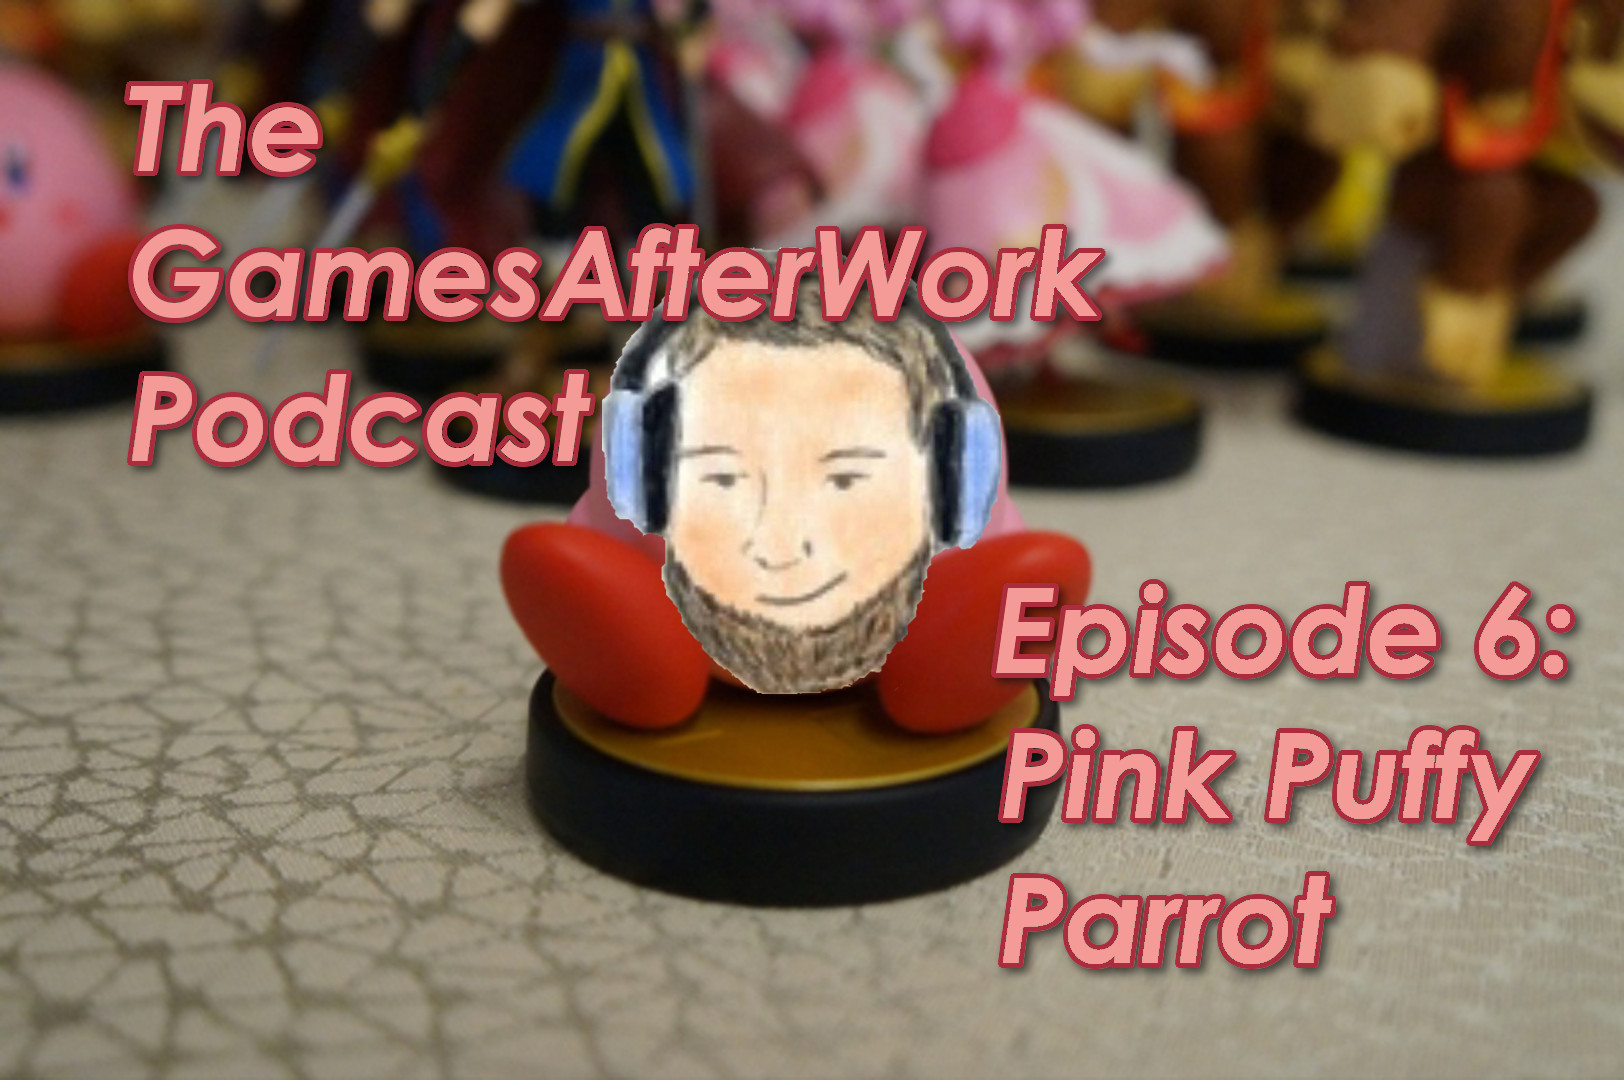 The GamesAfterWork Podcast 06: Pink Puffy Parrot